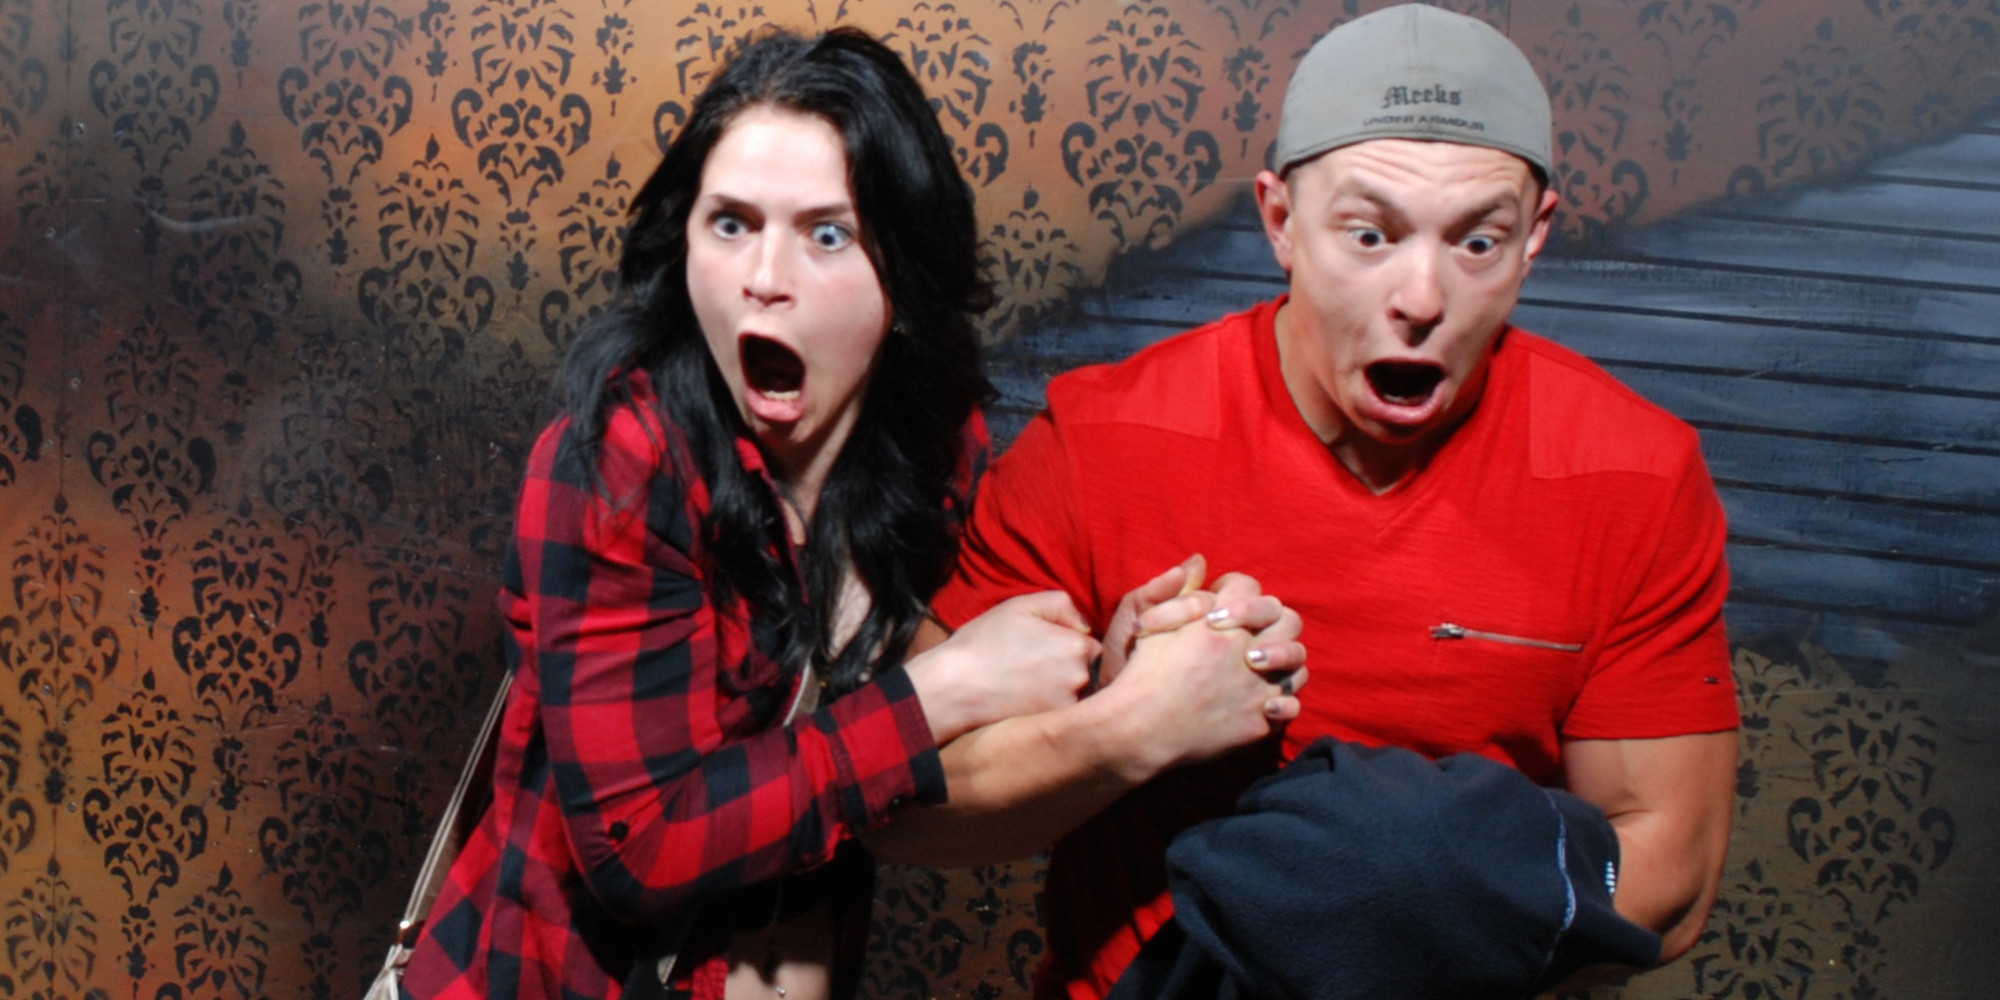 50 hilariously ridiculous haunted house reactions - 50 Hilariously Ridiculous Haunted House Reactions 6